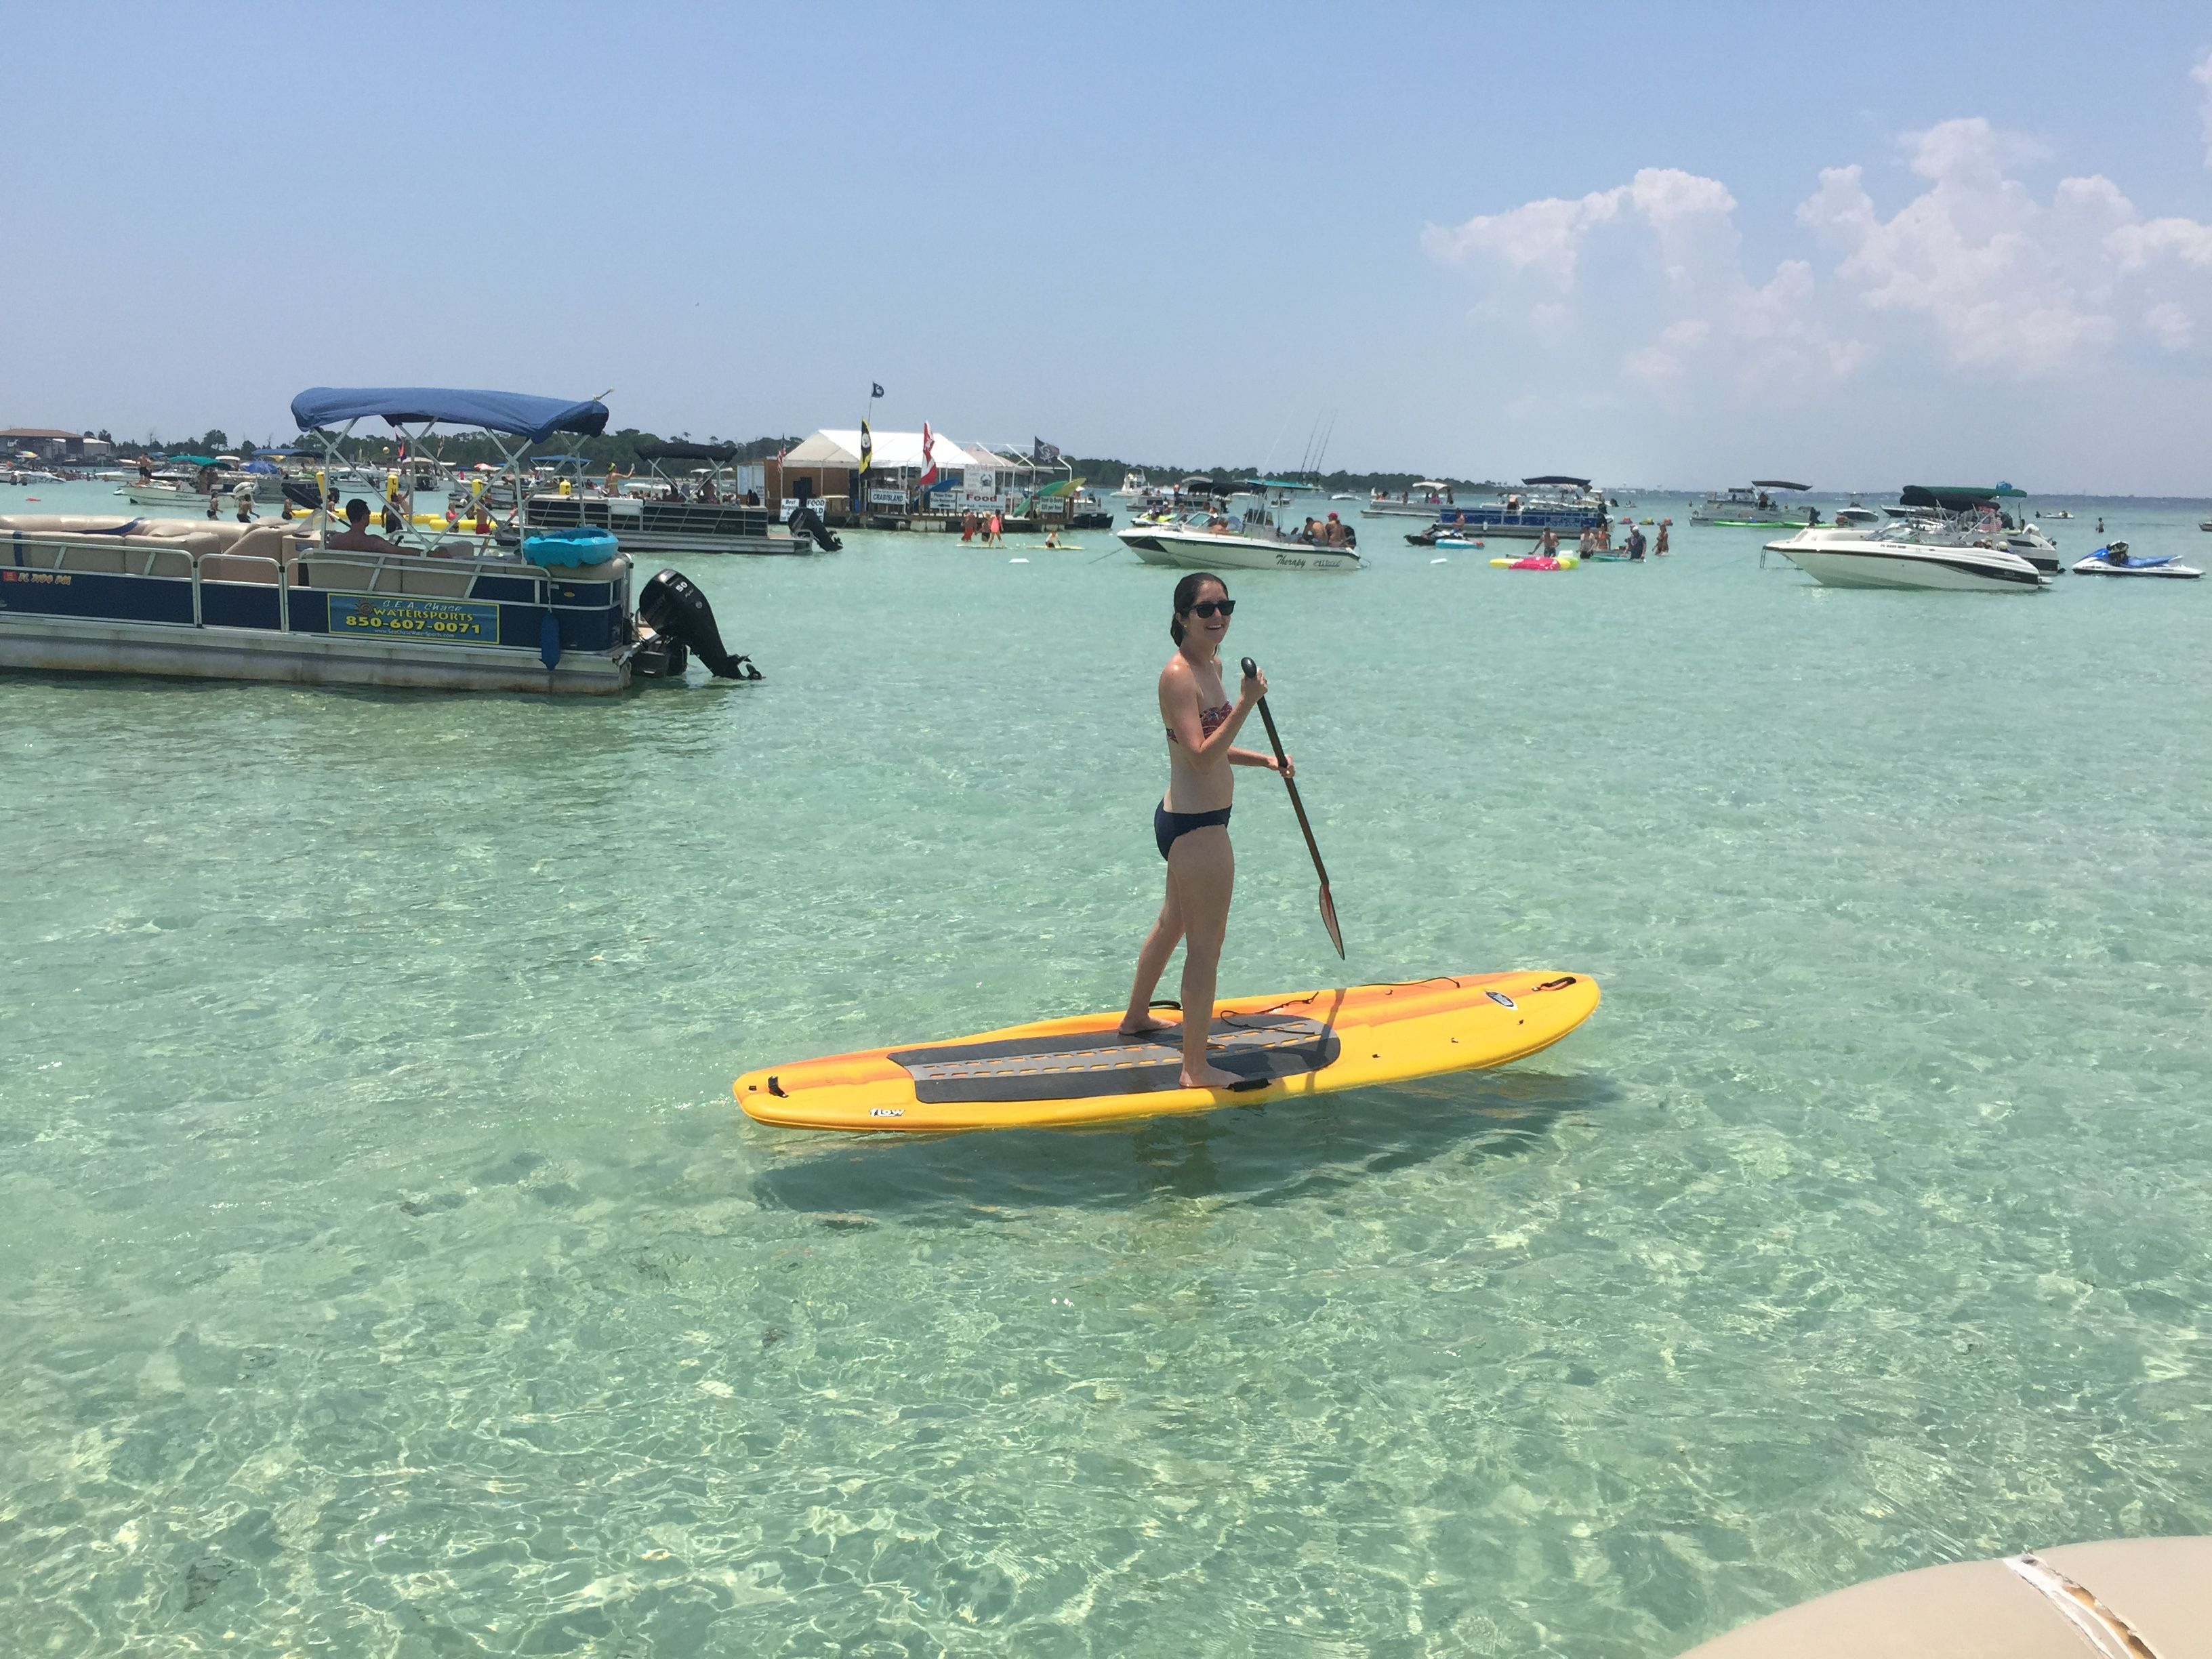 Small Groups Can Get To Crab Island On Paddleboard If You Are